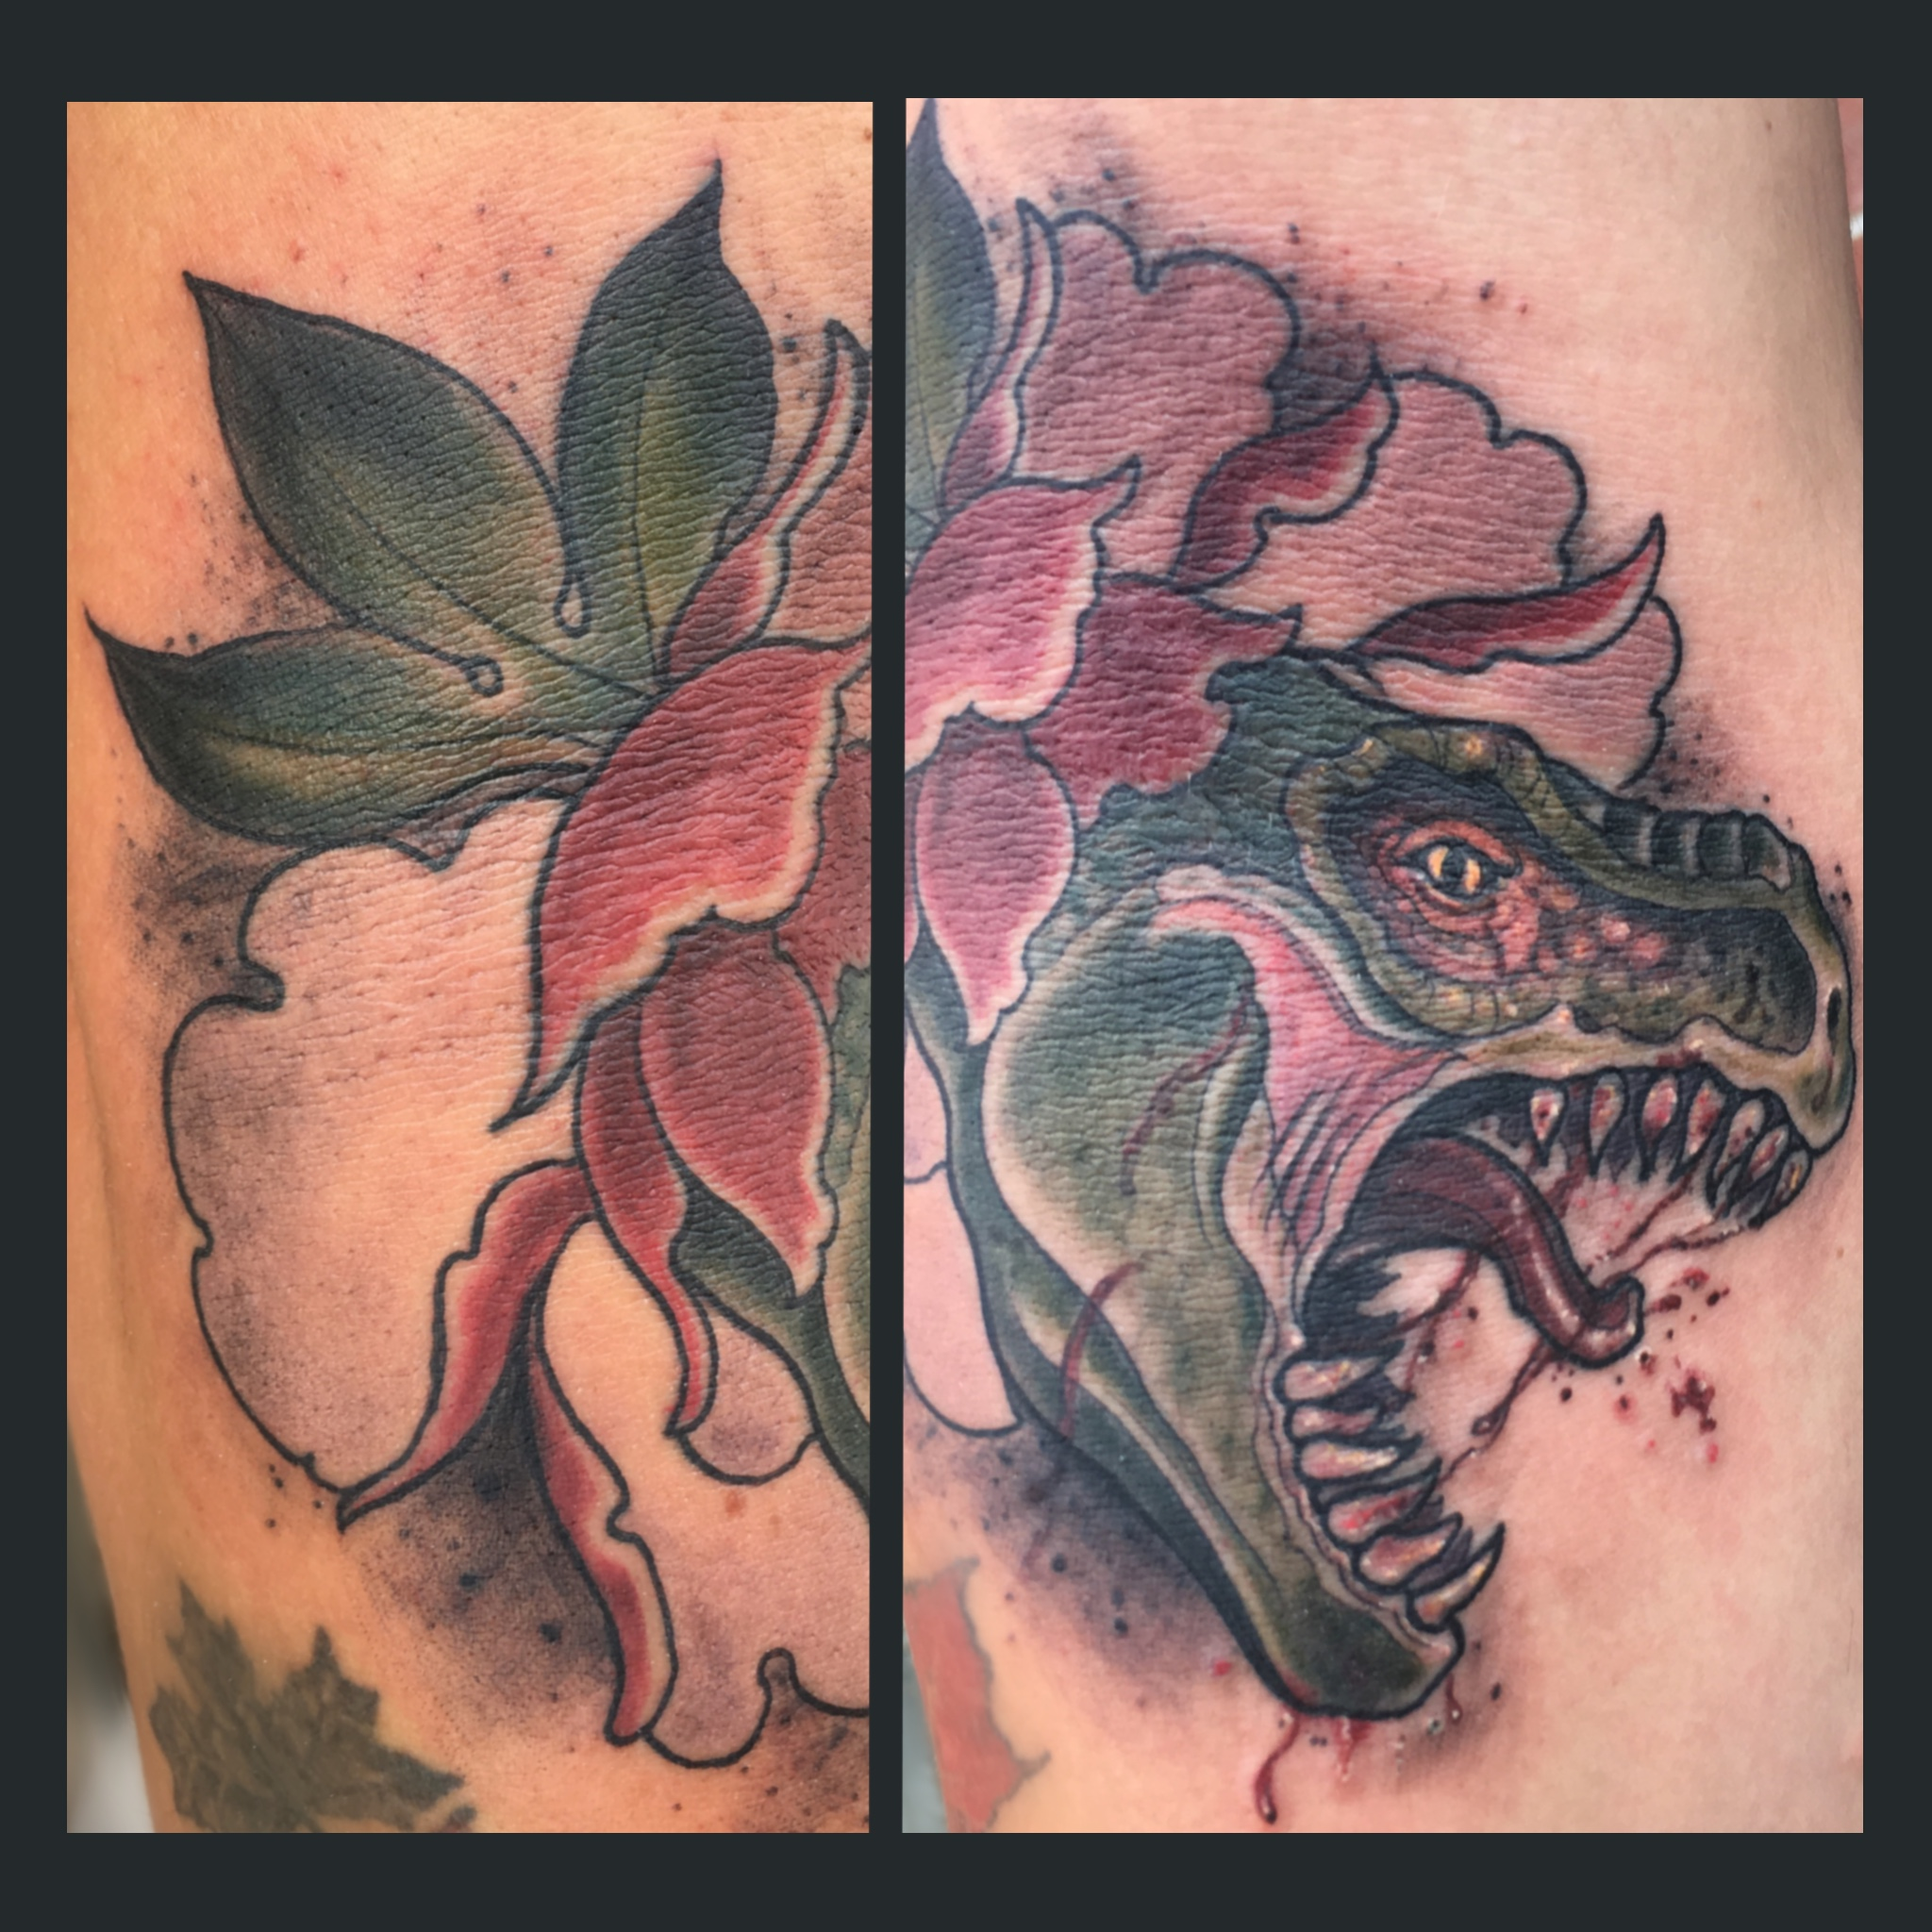 Tatianna Cook Tattoo 2019 Okanagan Tattoo Show & Brewfest Artist